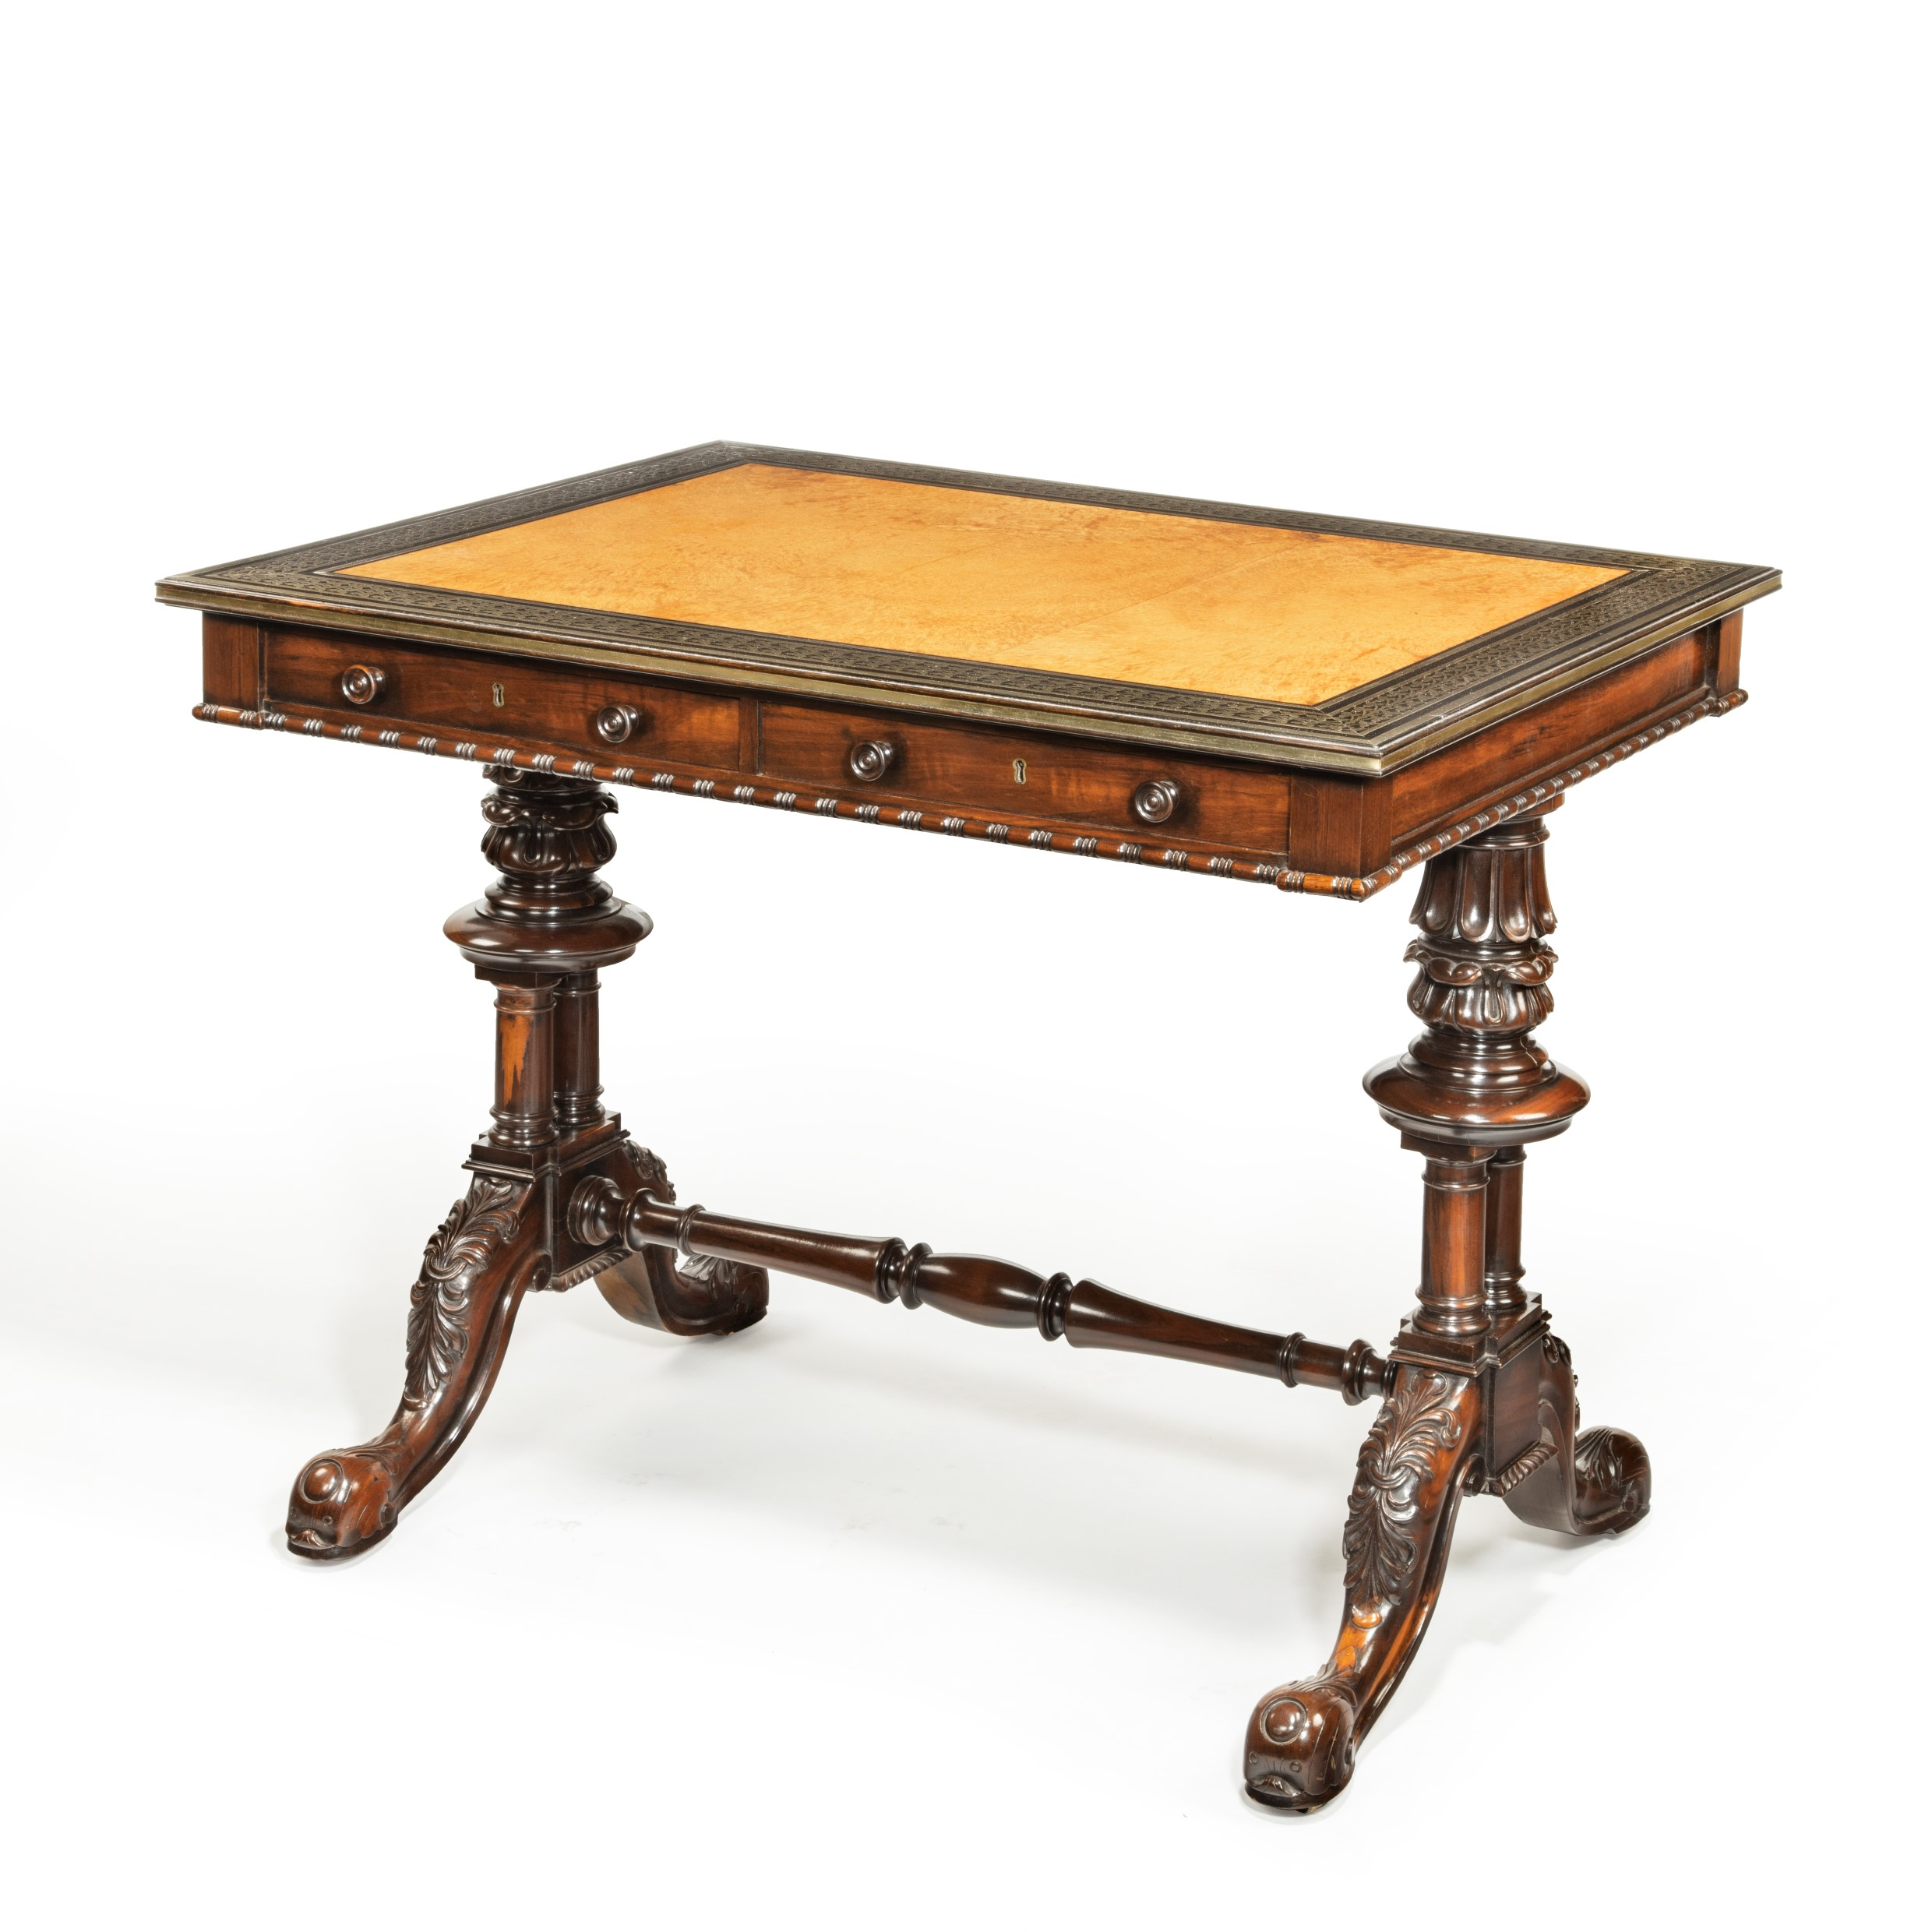 A striking Goncalo Alves (Albuera wood) writing table attributed to Gillows and Bullock